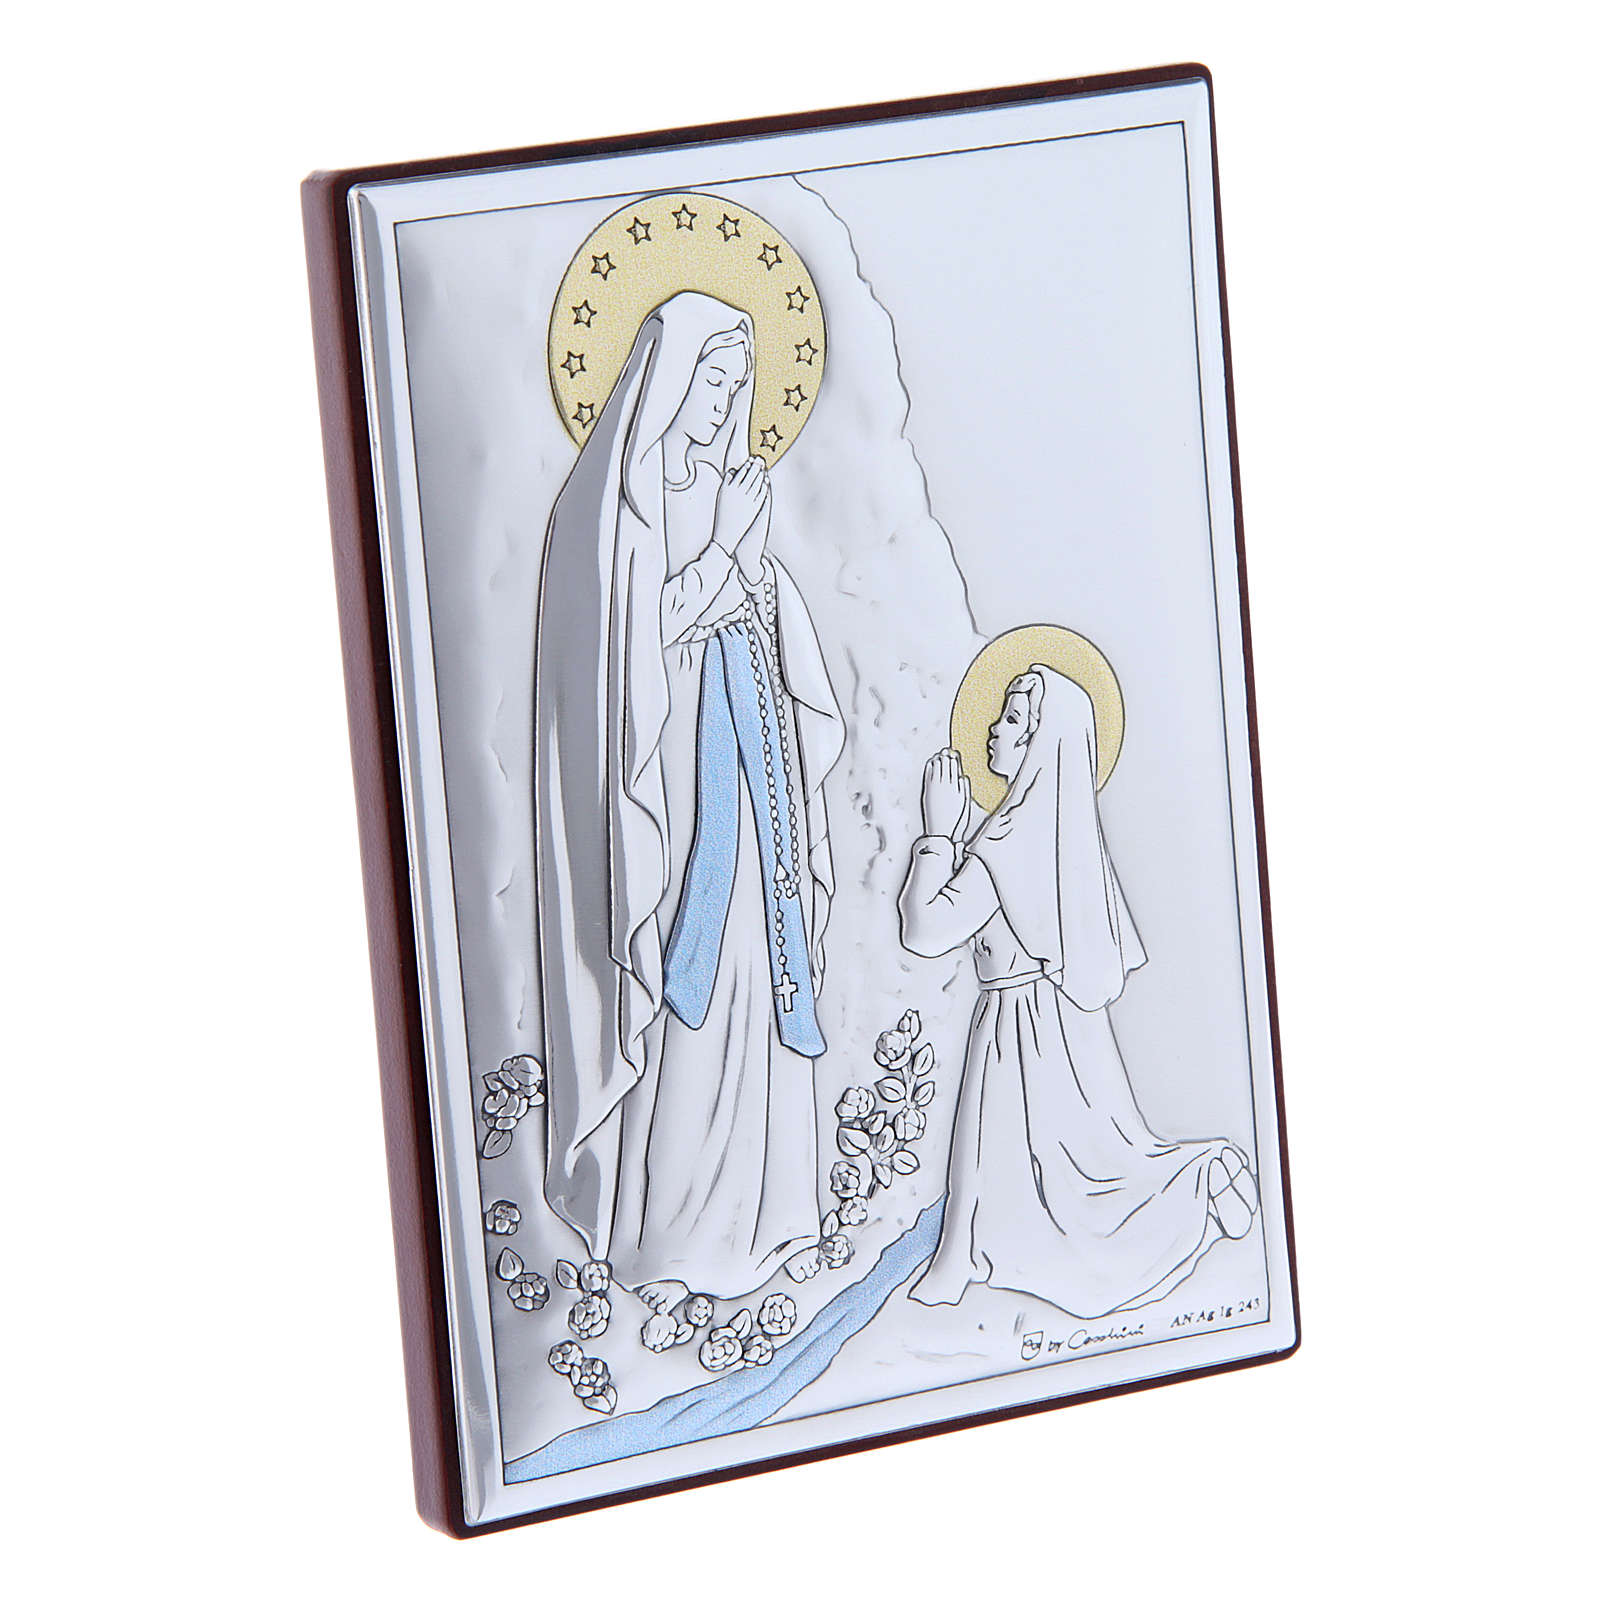 Our Lady of Lourdes painting in laminboard with refined wooden back 11X8 cm 4